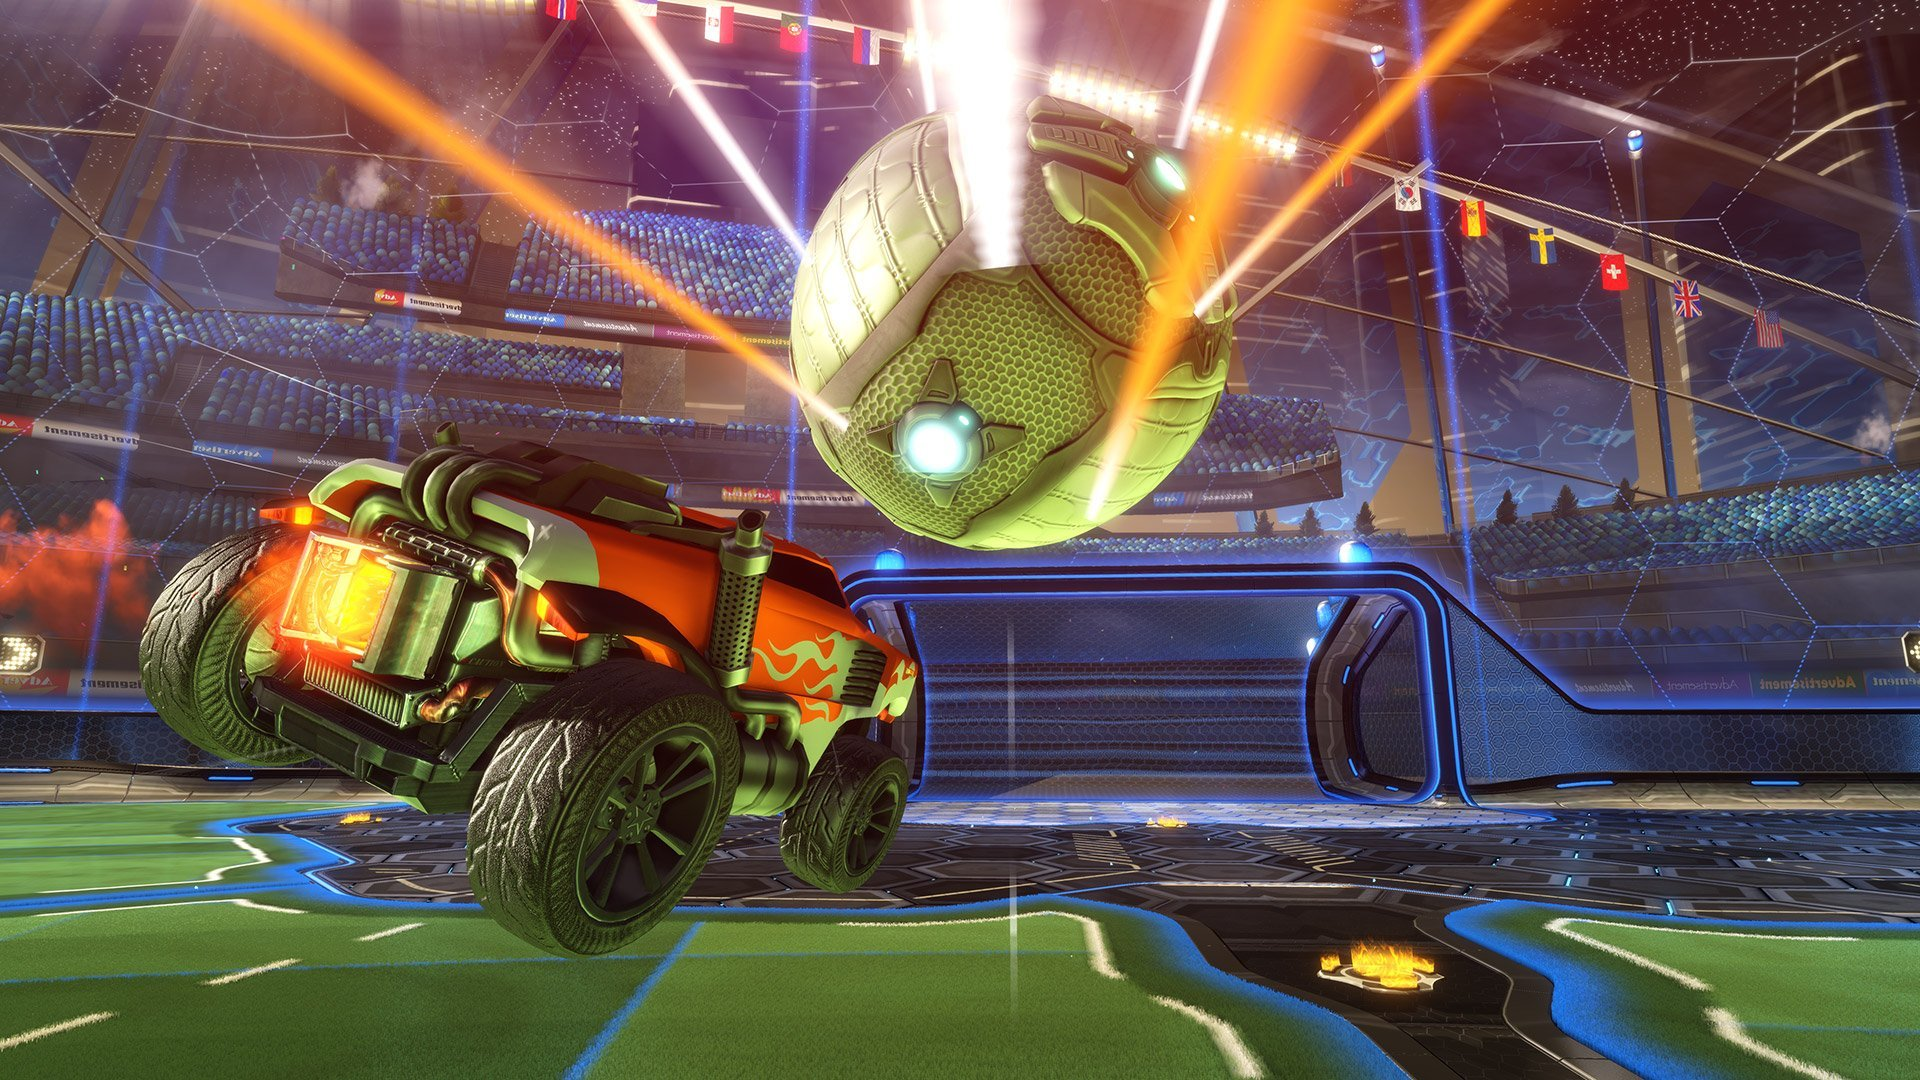 Resultado de imagen para Rocket League Game of the Year